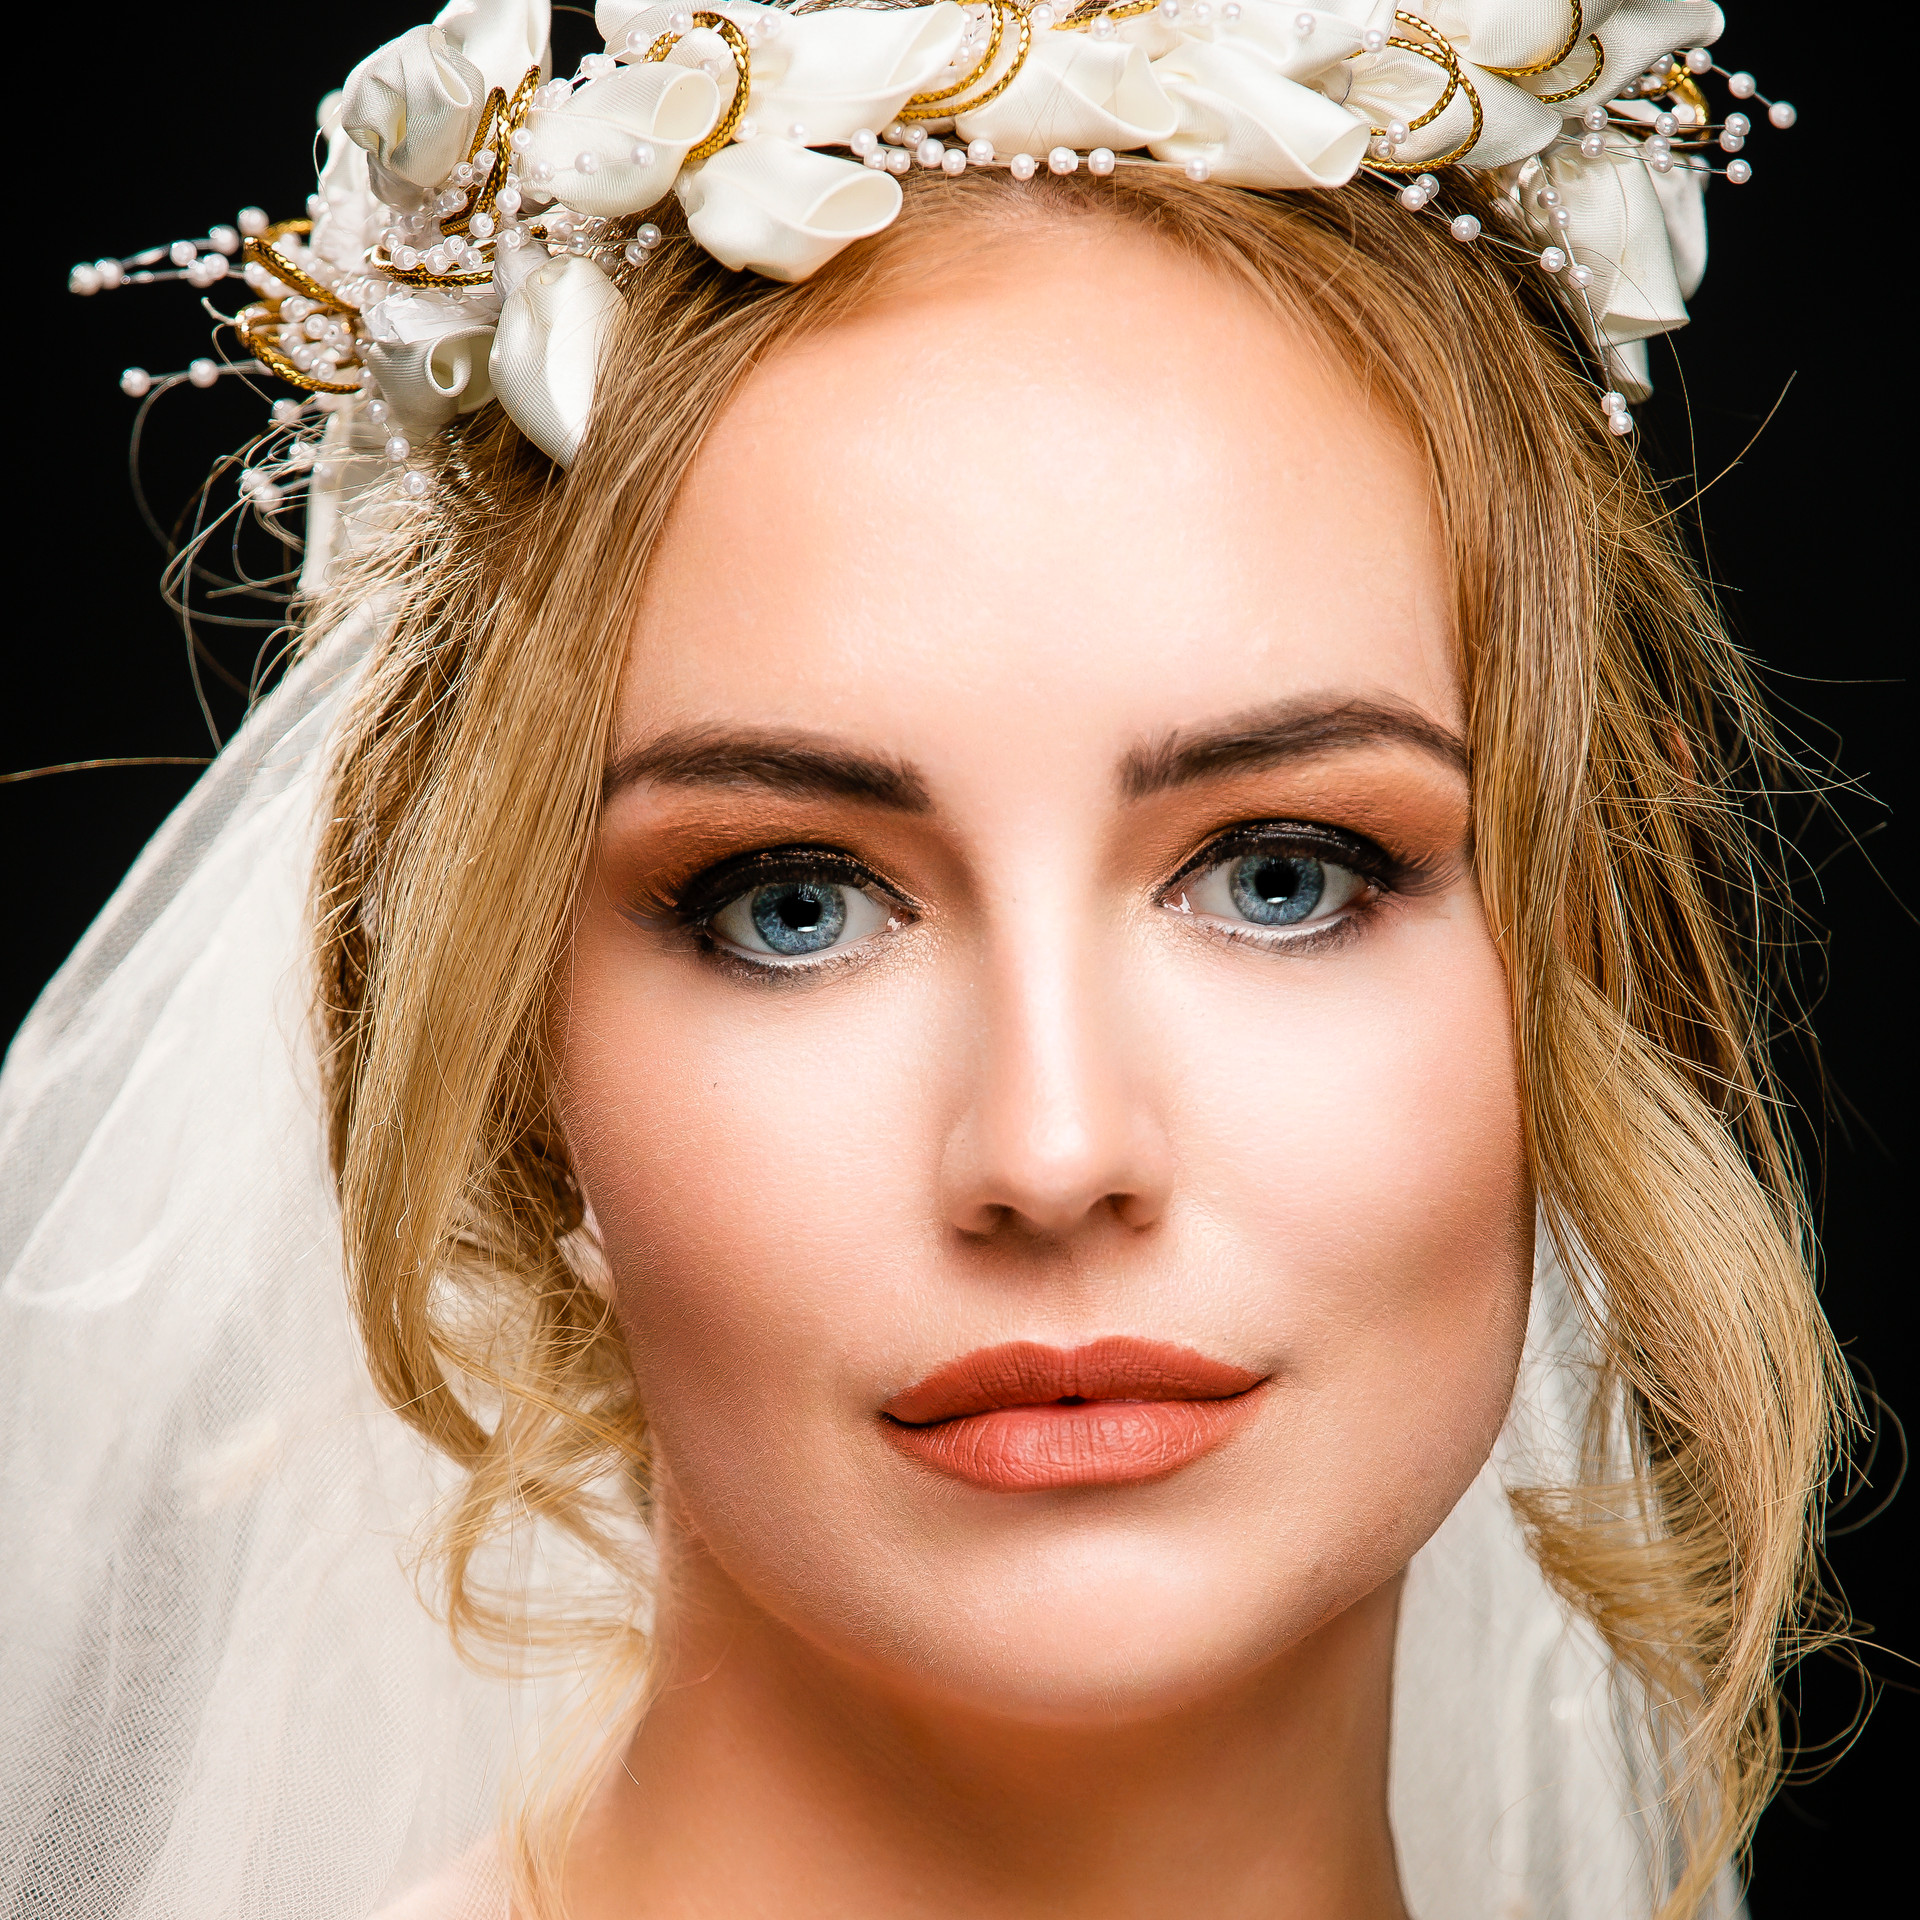 Beautiful bride in wedding photos